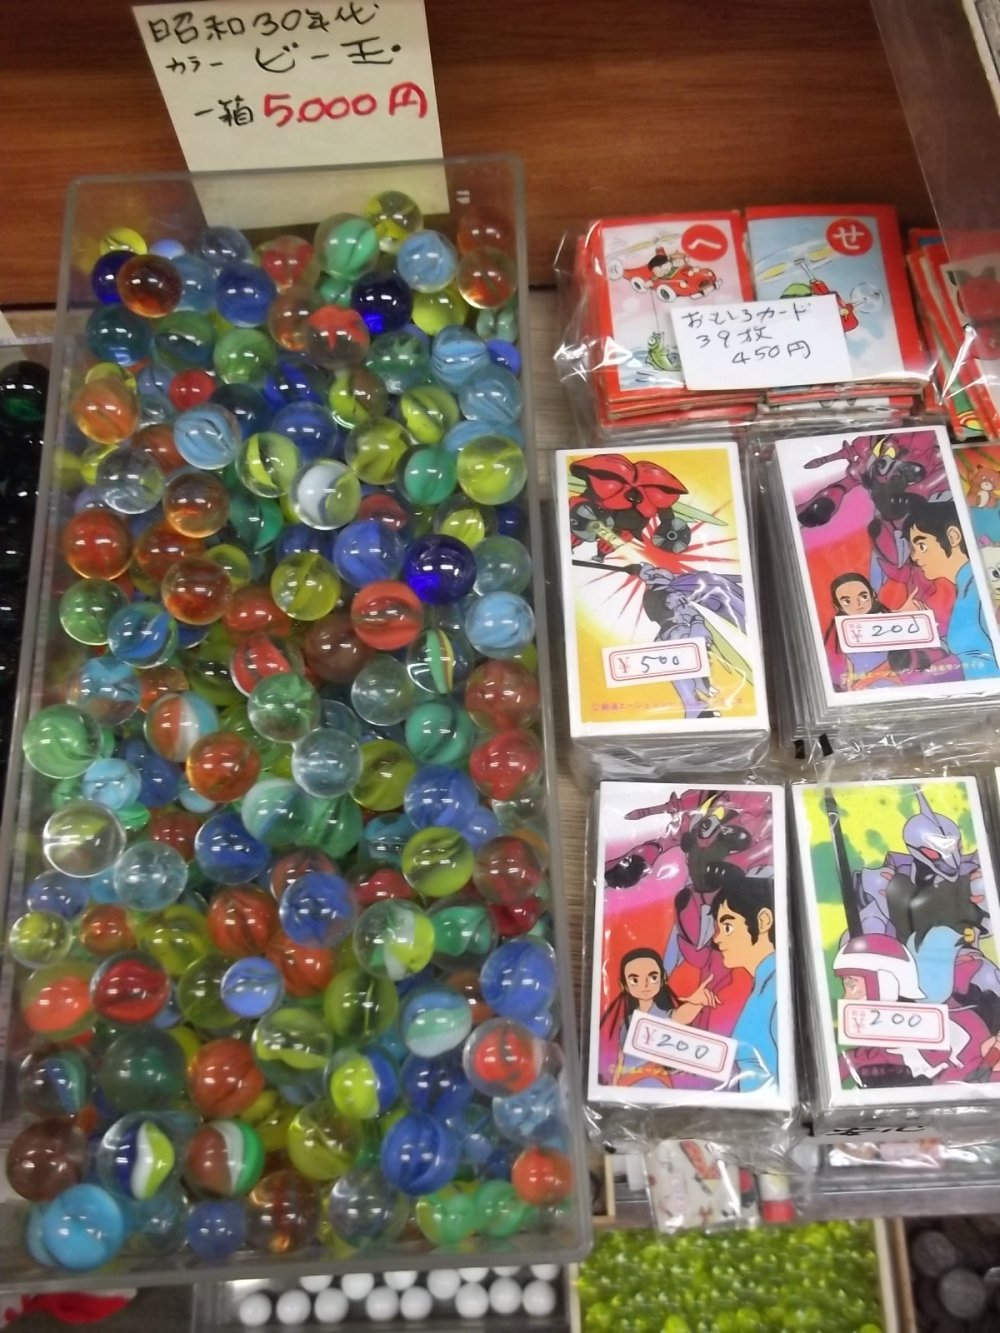 Marbles and collectors' cards